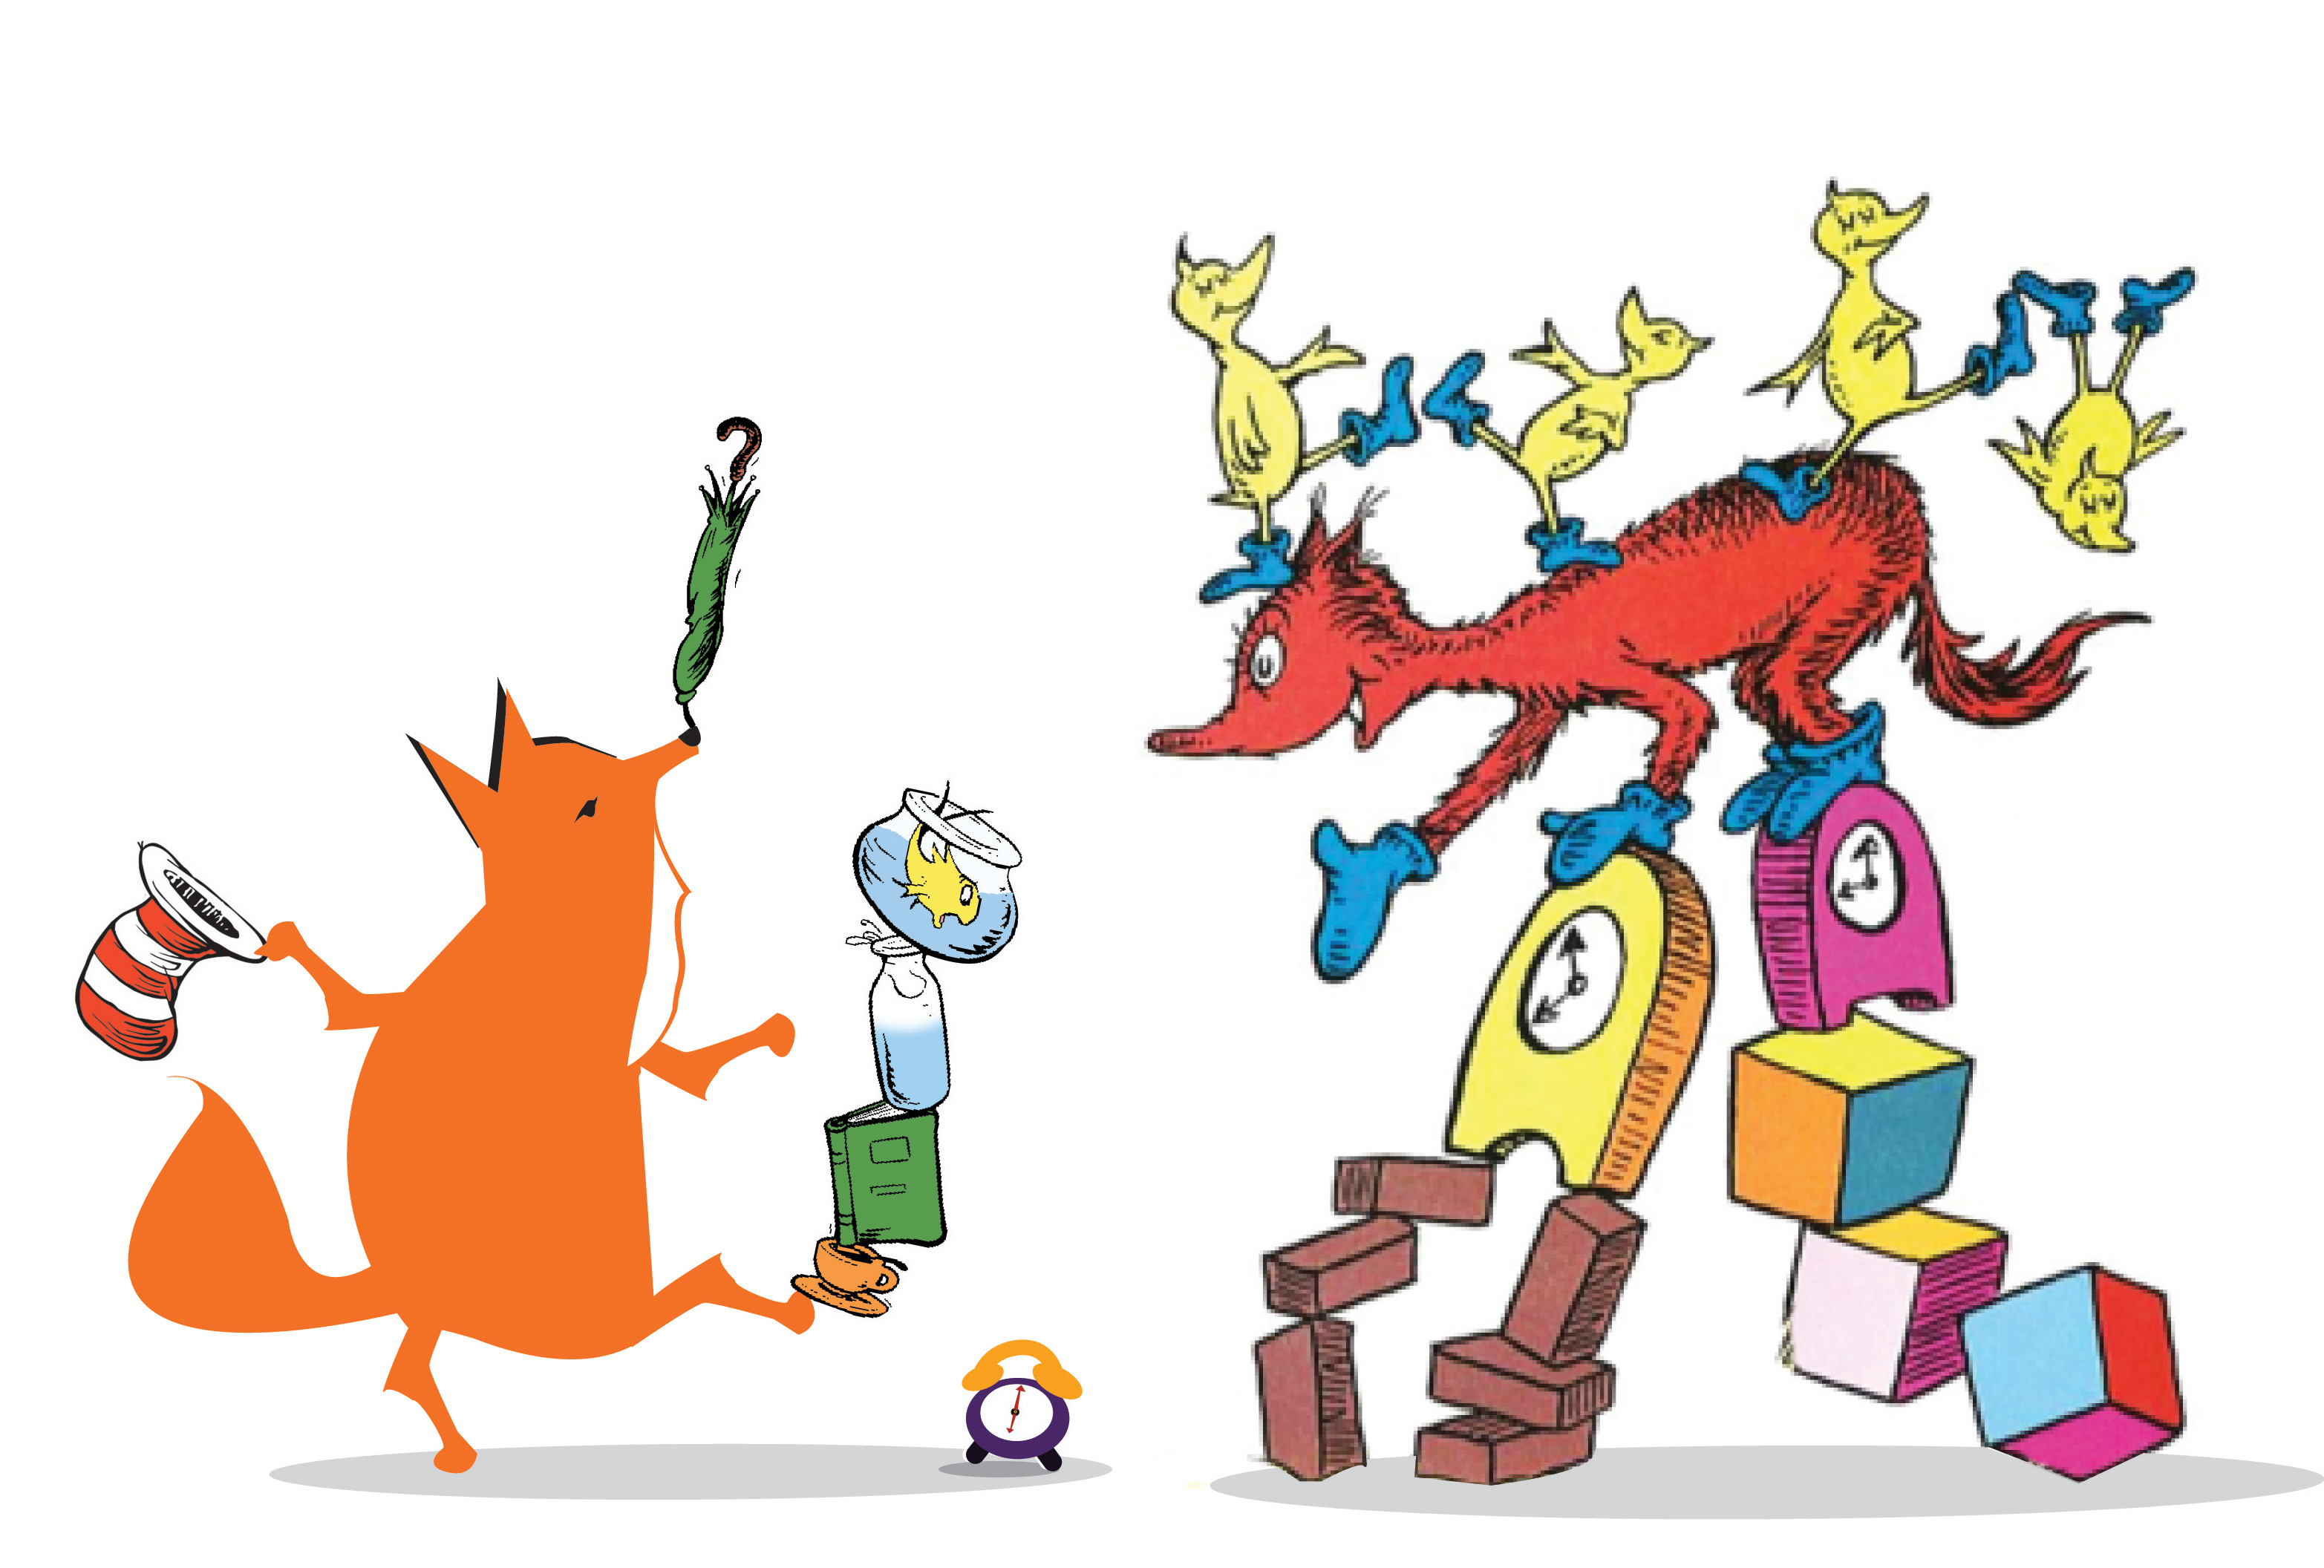 Dr Seuss Characters Fox In Socks Drawing Free Image